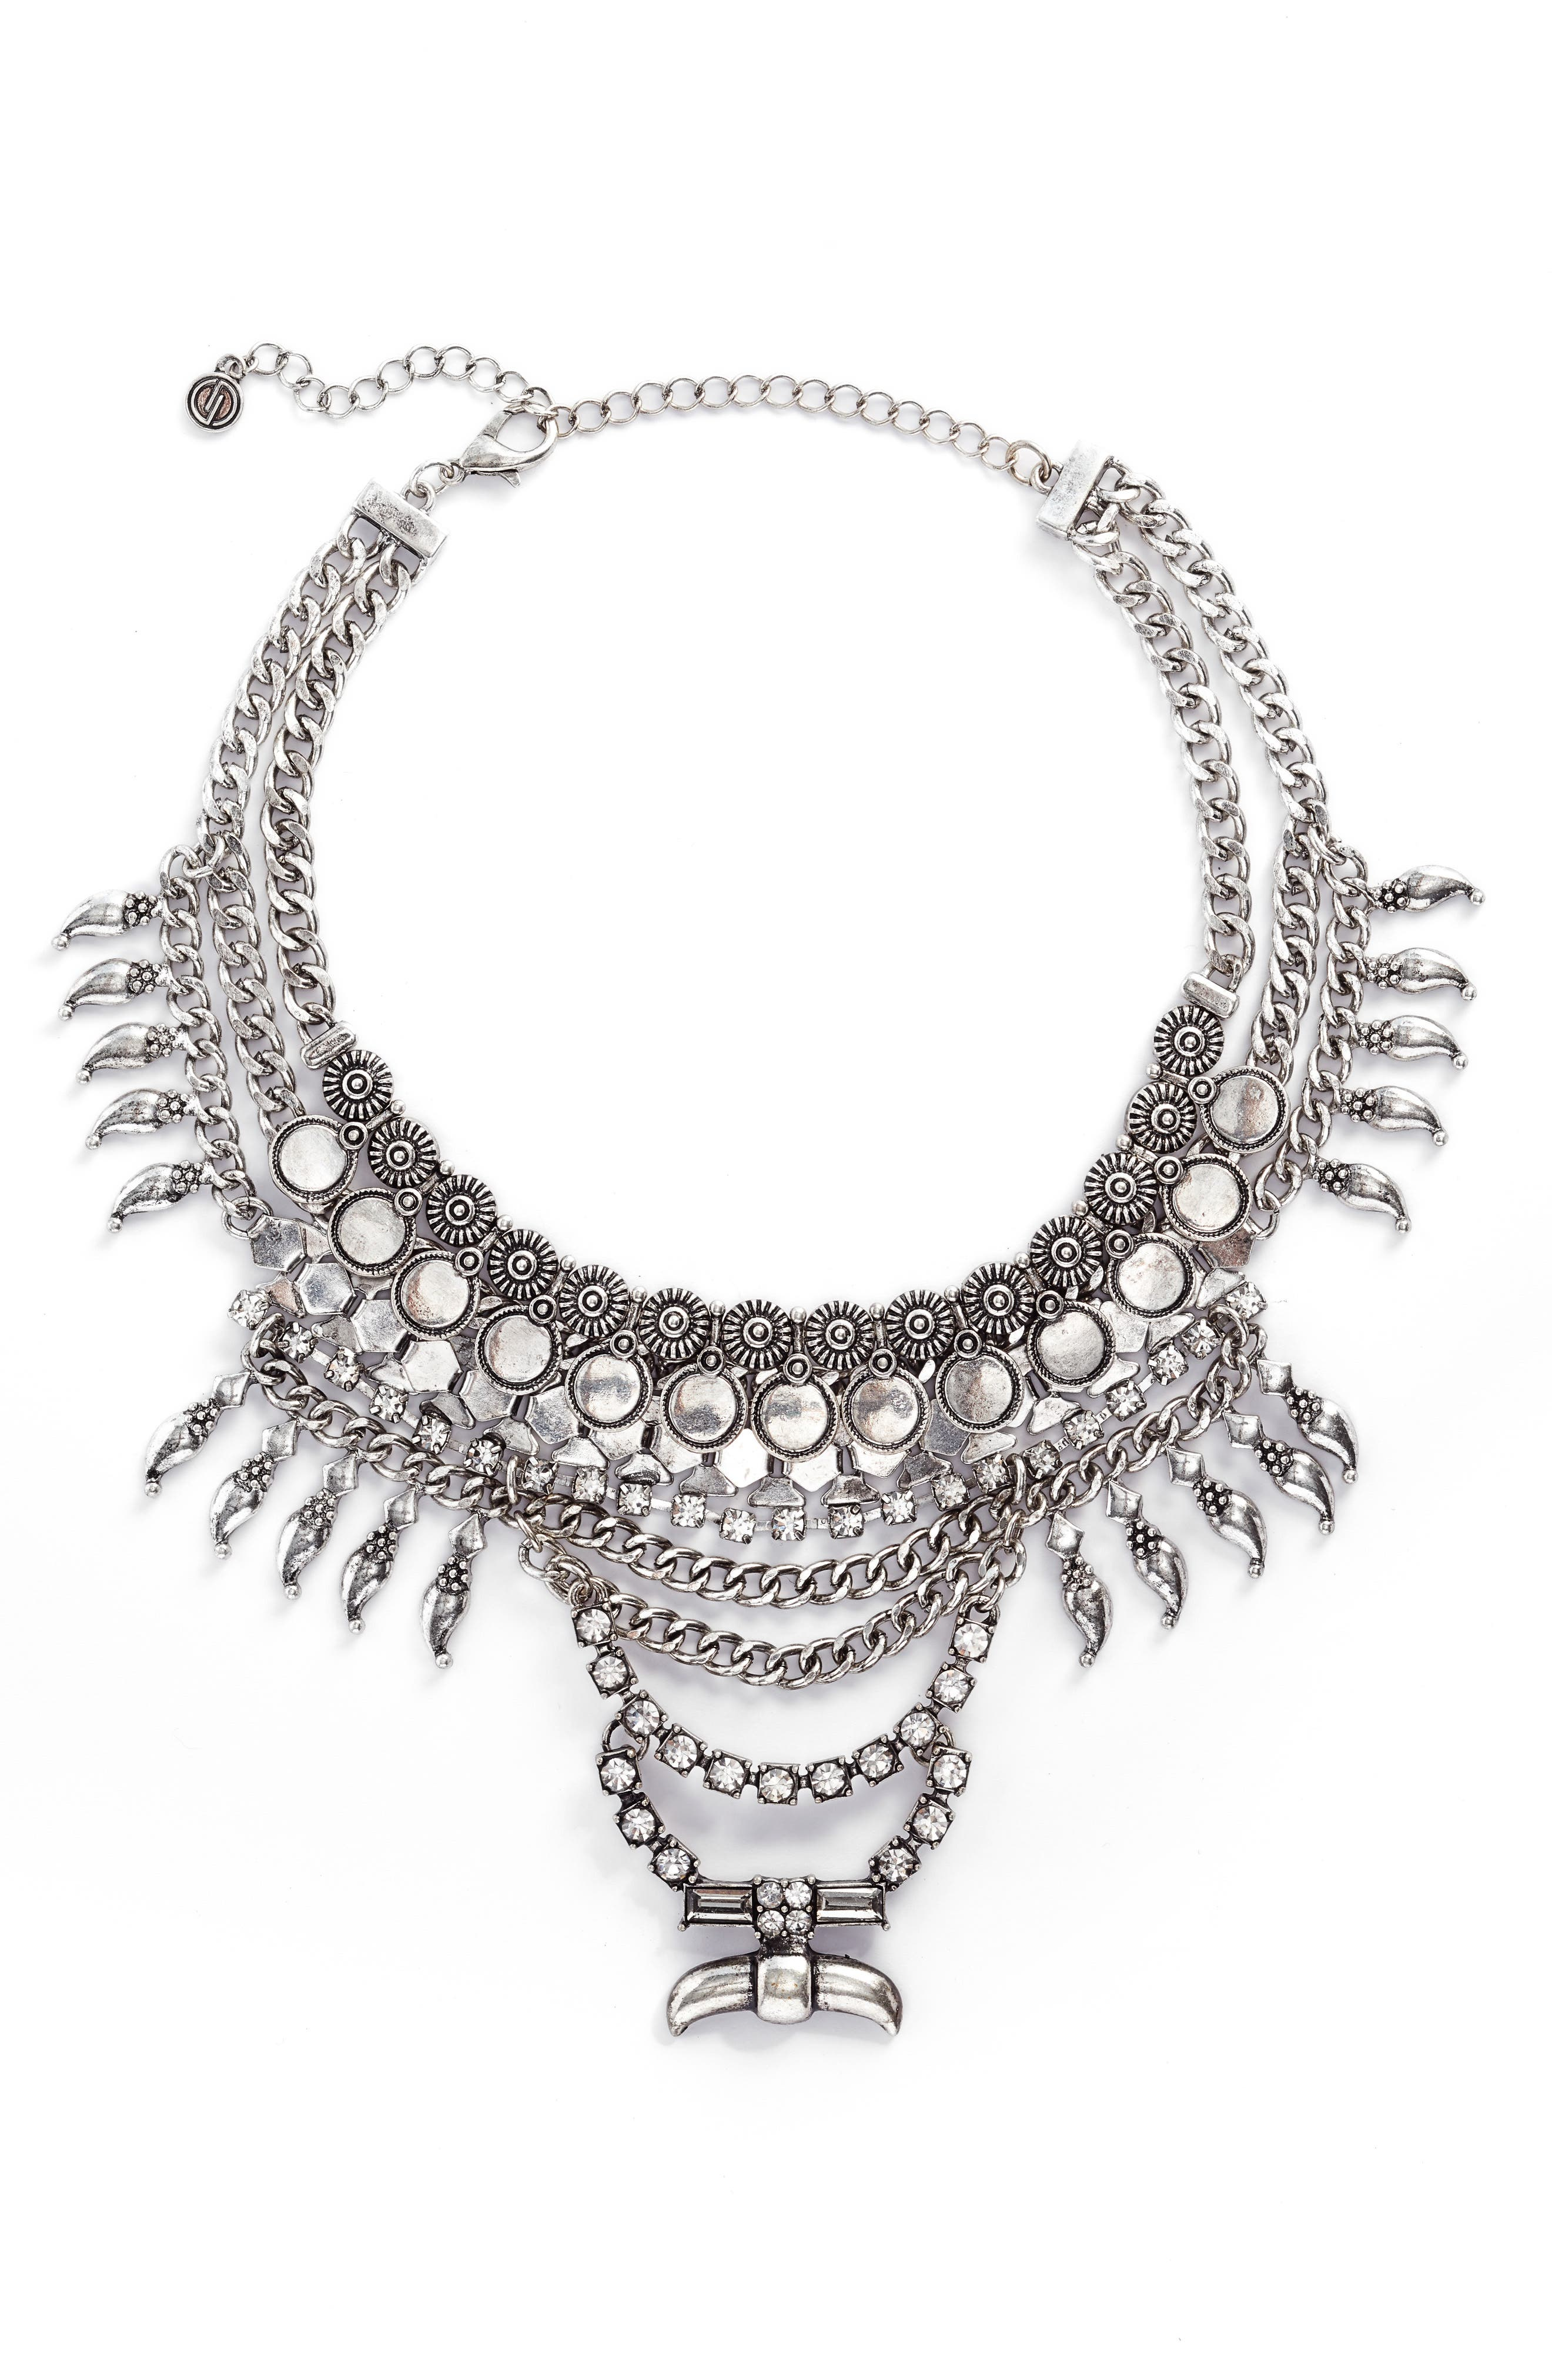 Alternate Image 1 Selected - DLNLX BY DYLANLEX Crystal & Chain Multistrand Necklace